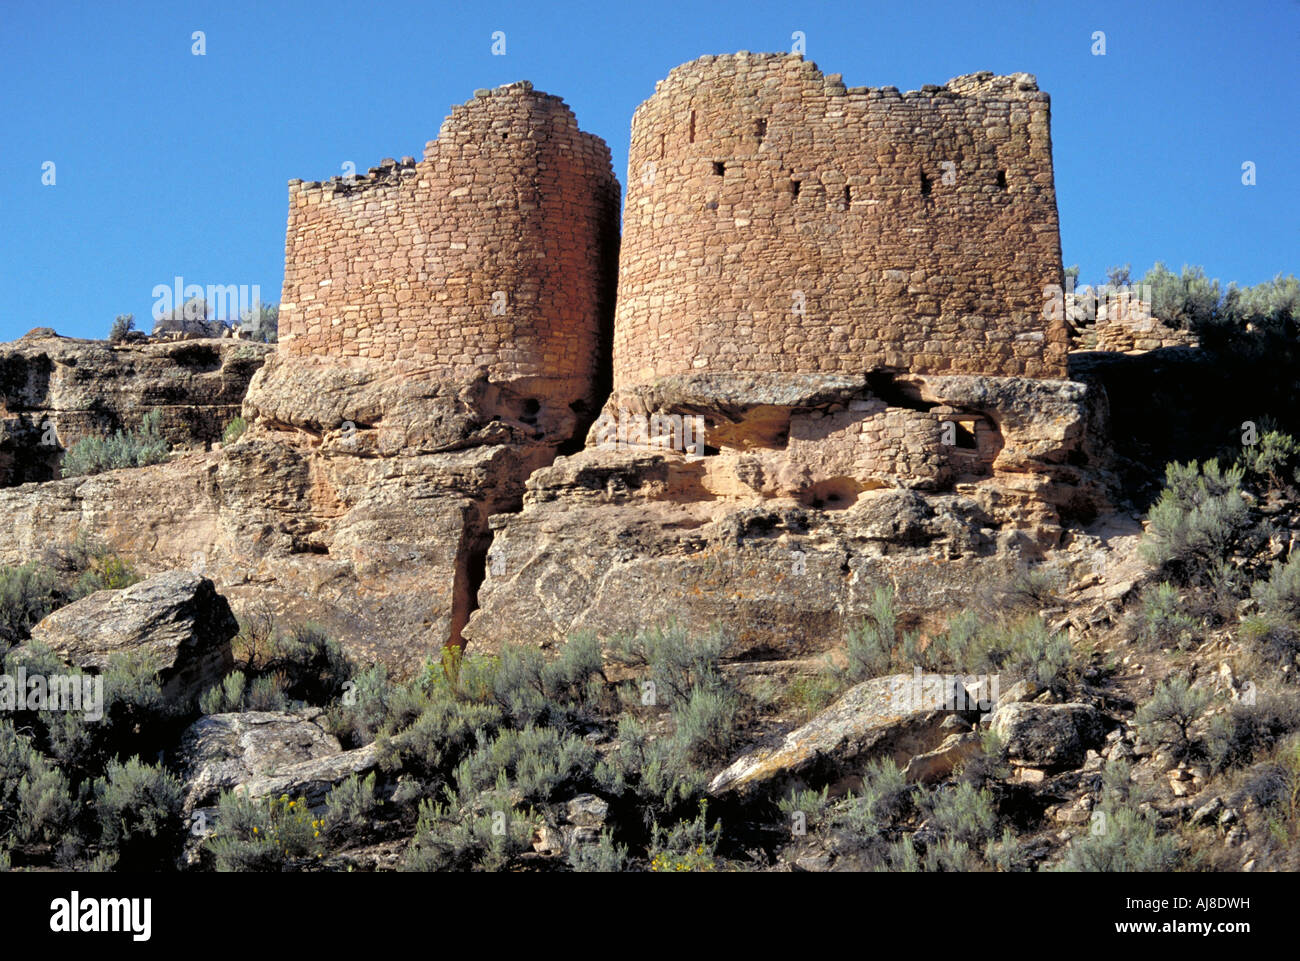 Elk224 6147 Utah Hovenweep NM Anasazi period ruins 1200 AD Twin Towers - Stock Image